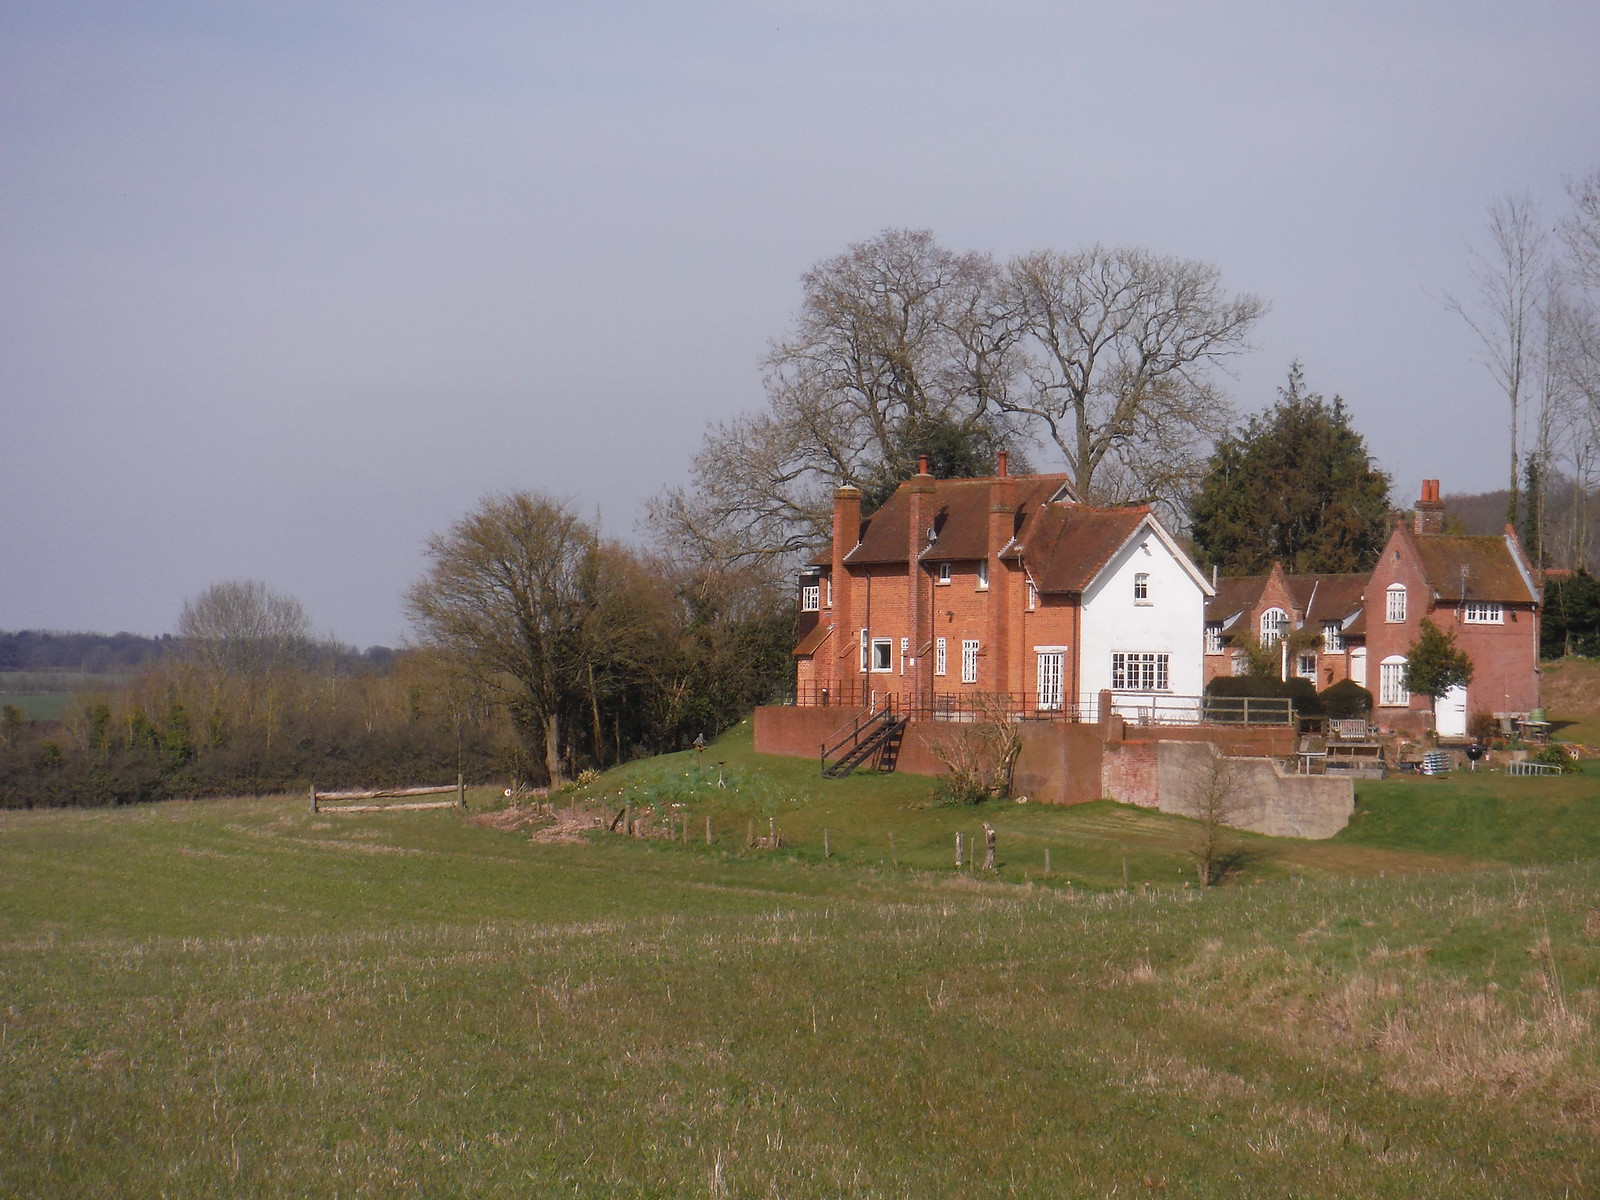 Hawkridge House SWC Walk 260 Aldermaston to Woolhampton [Midgham Station] (via Frilsham)